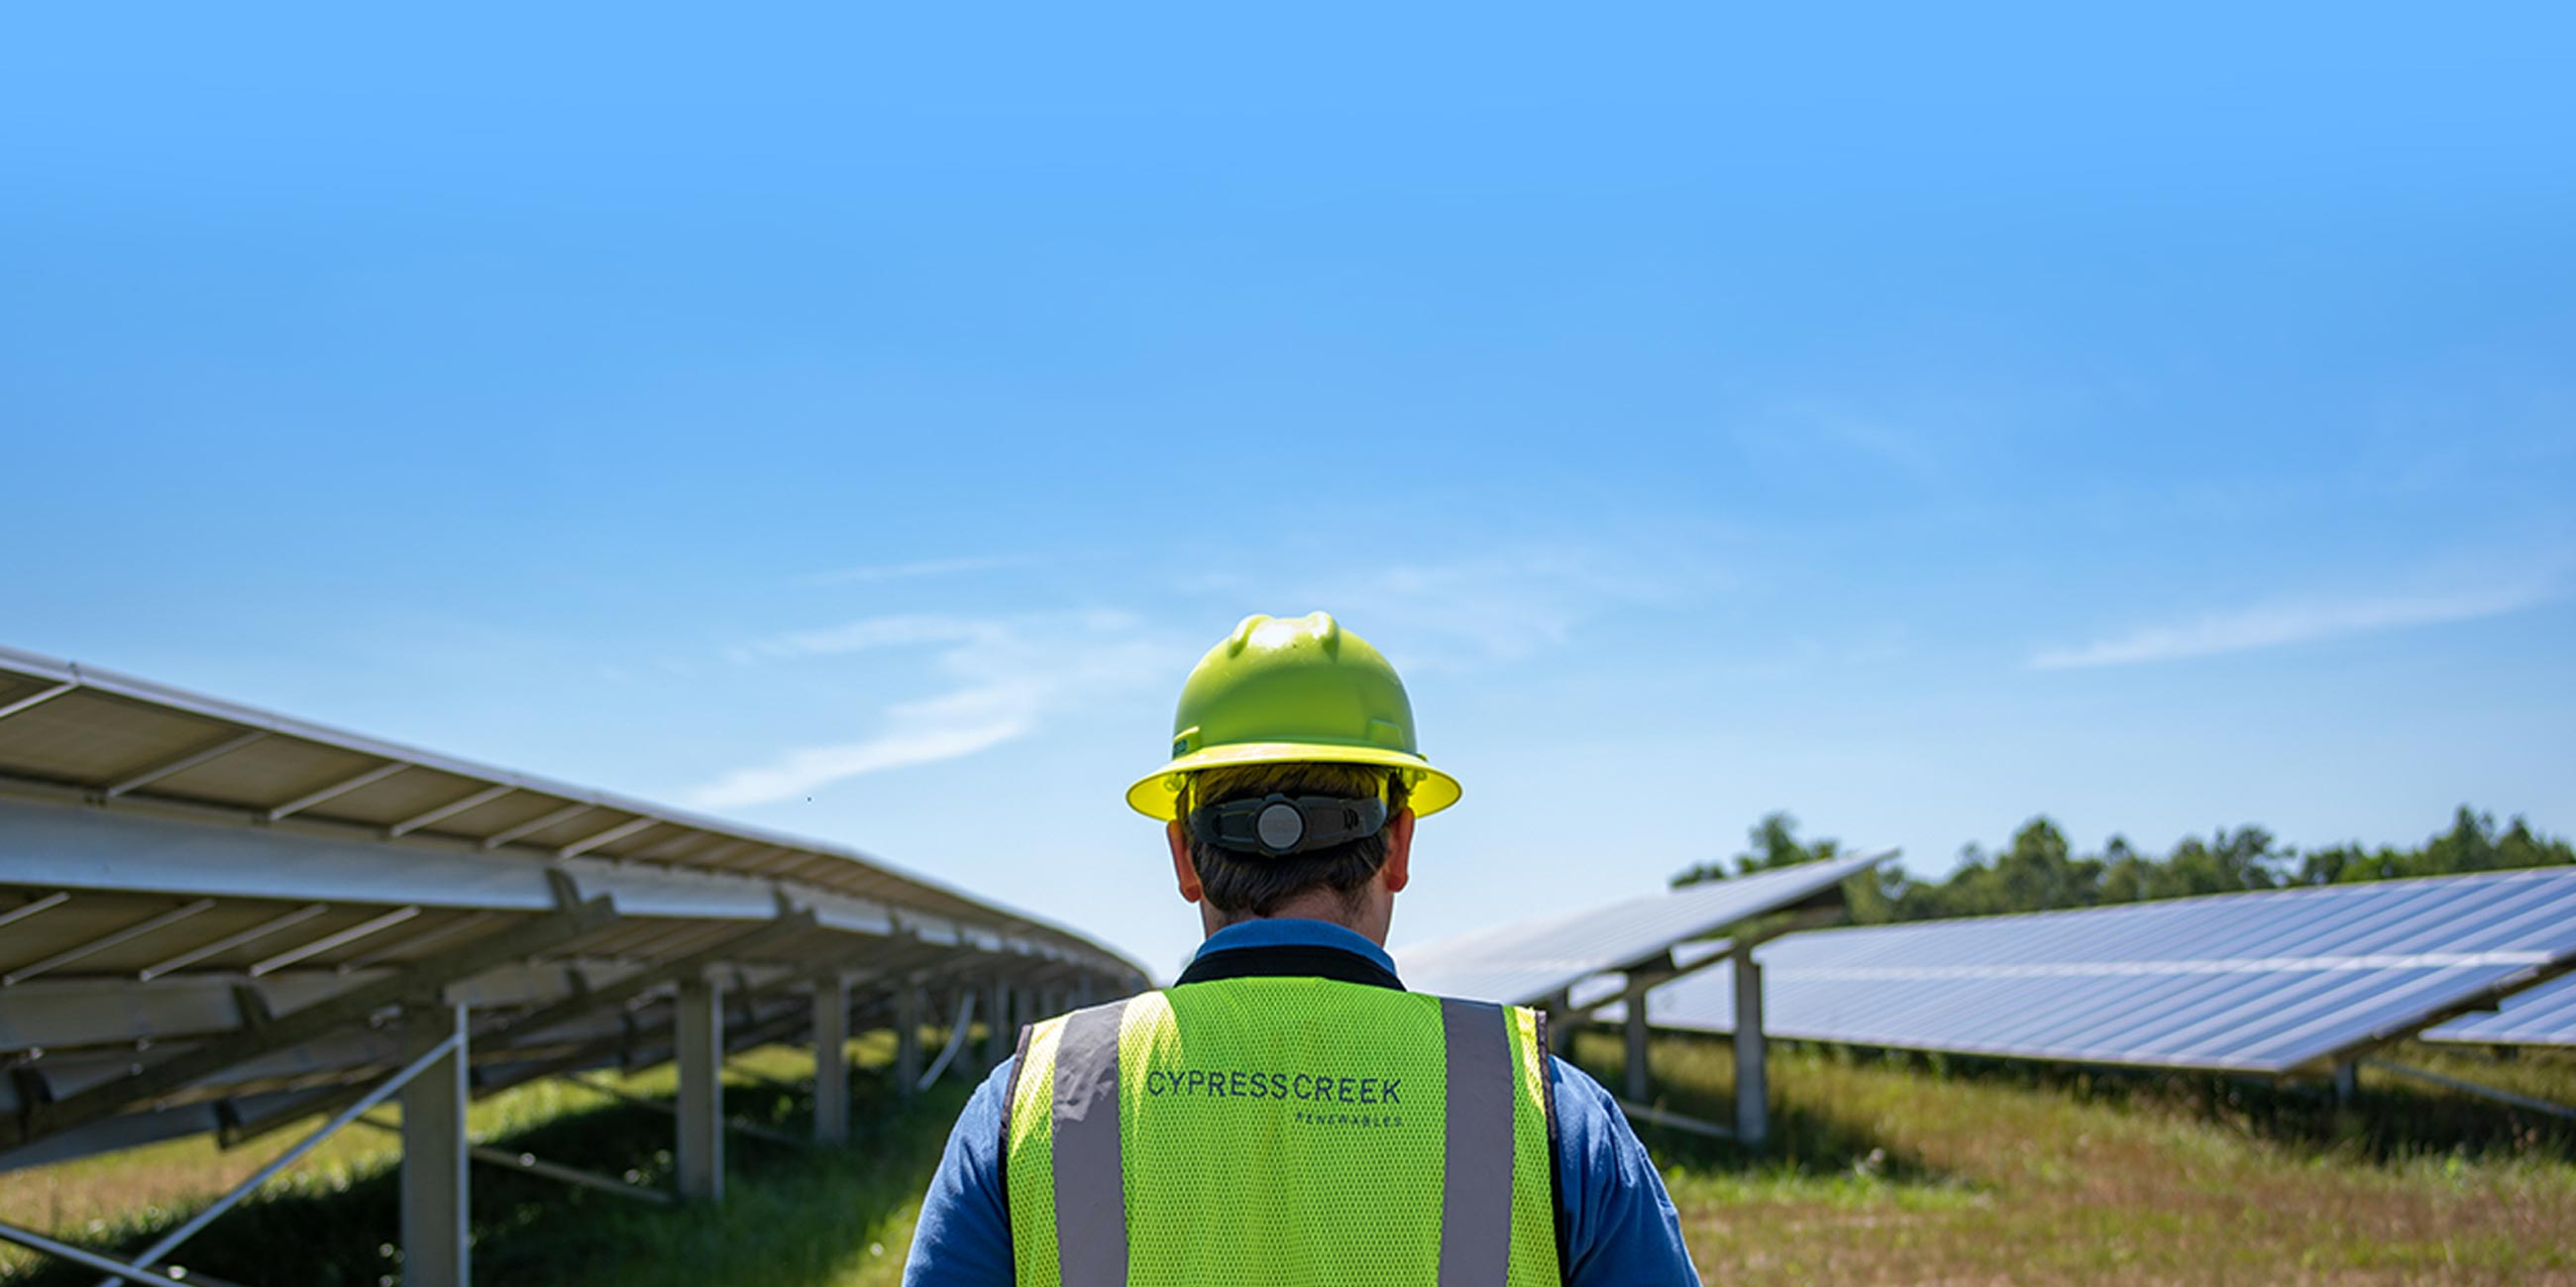 Cypress Creek Operations Employee At North Carolina Solar Farm